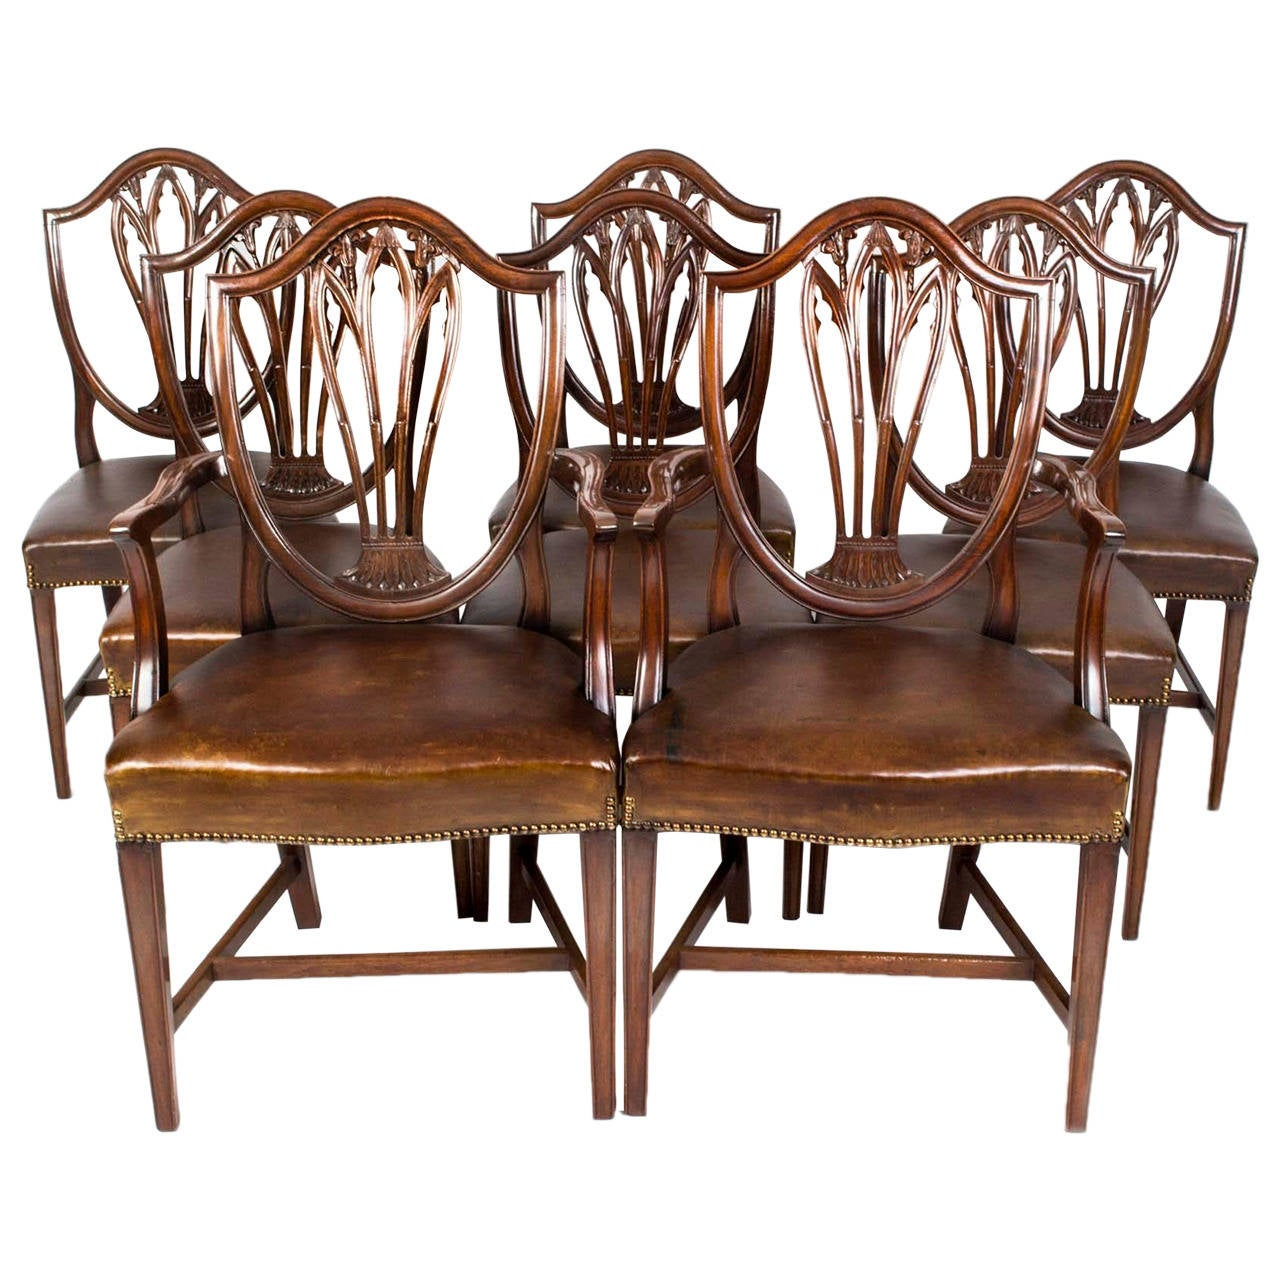 Antique Set 8 English Hepplewhite Dining Chairs C 1900 For